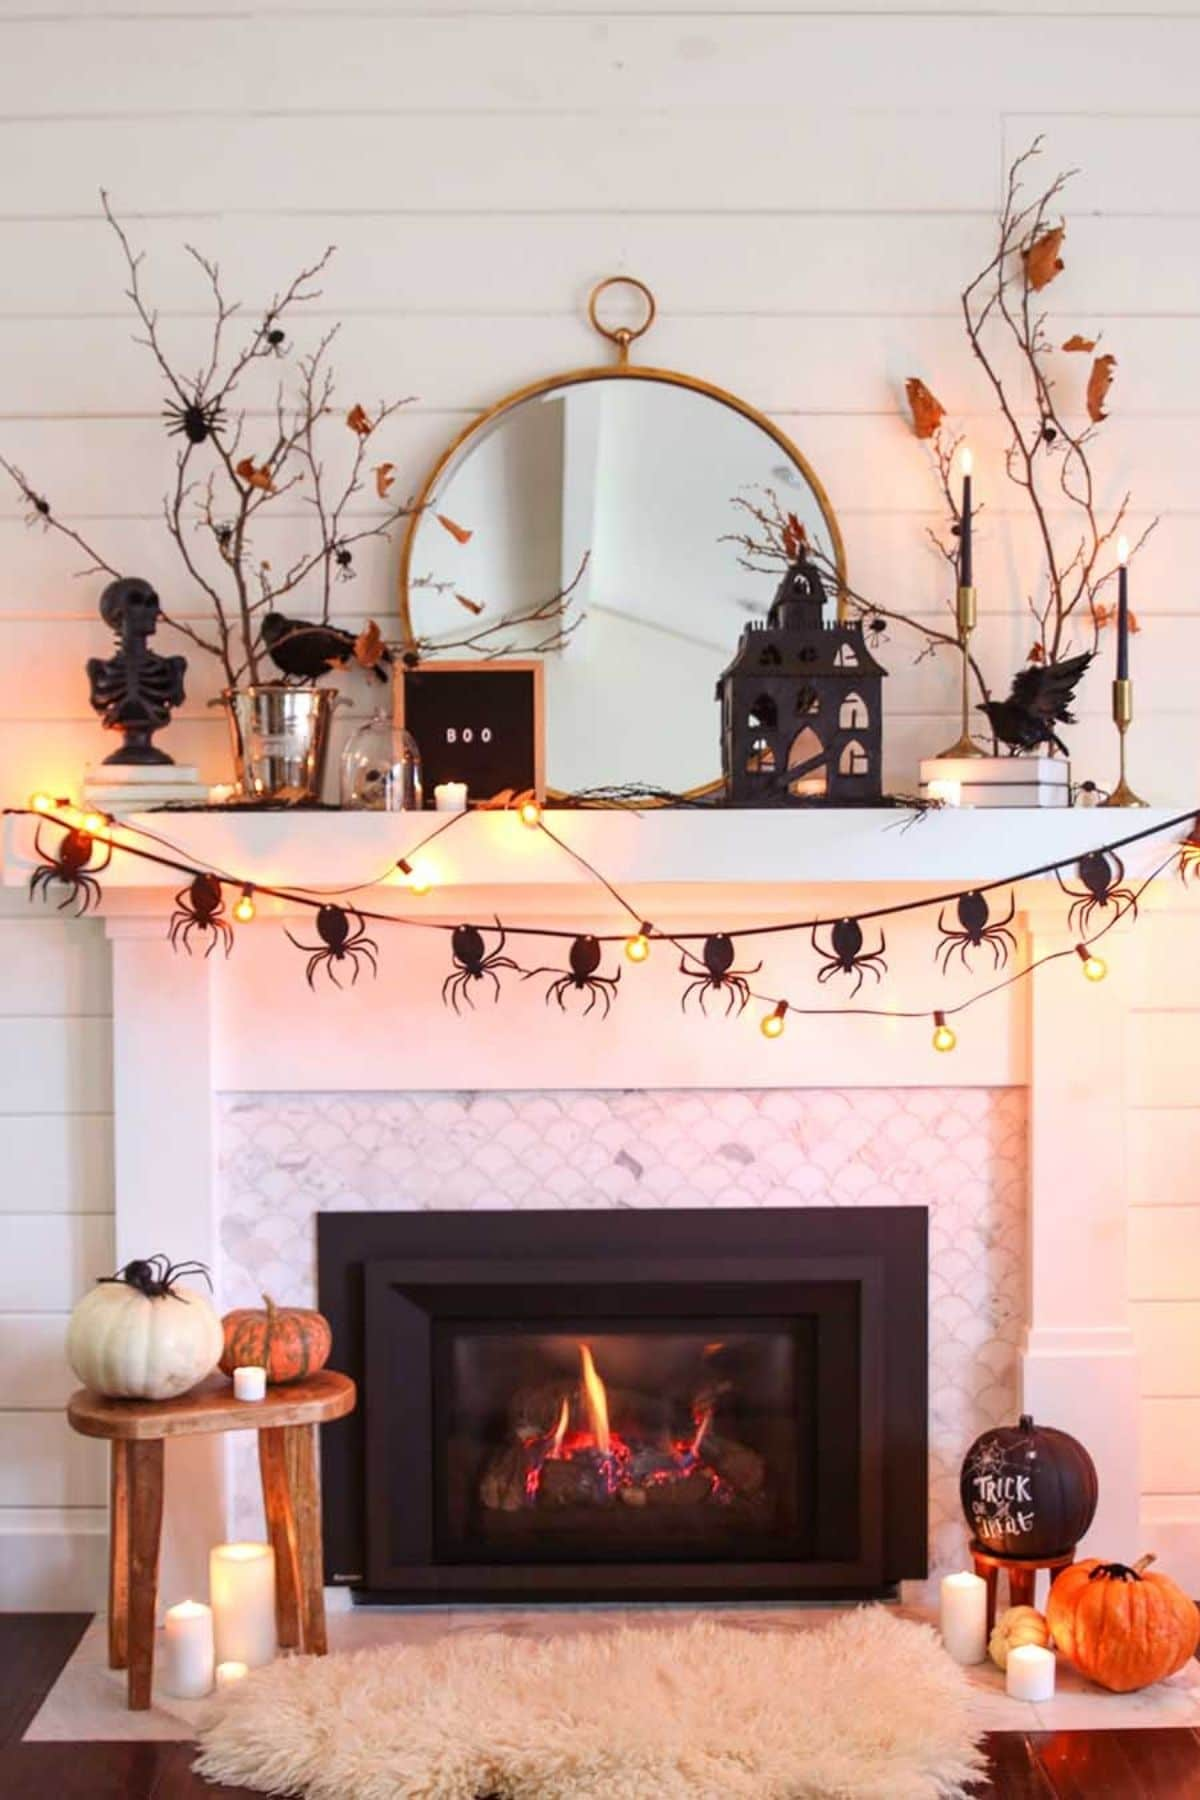 halloween mantel with spiders, pumpkins, and branches